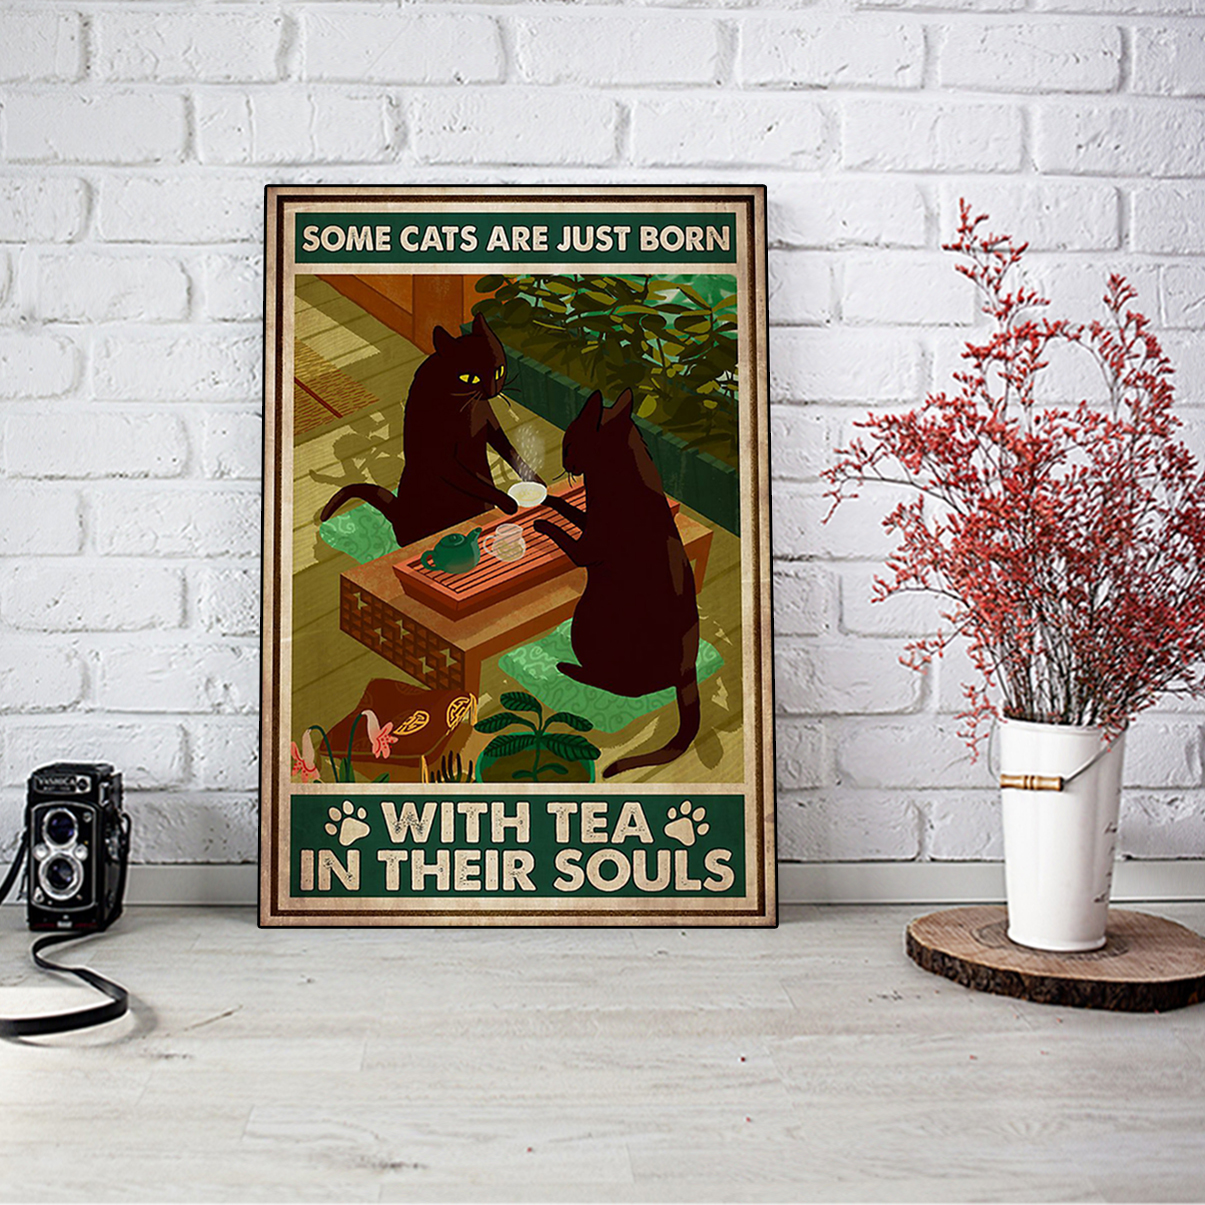 Some cats are just born with tea in their souls poster A3